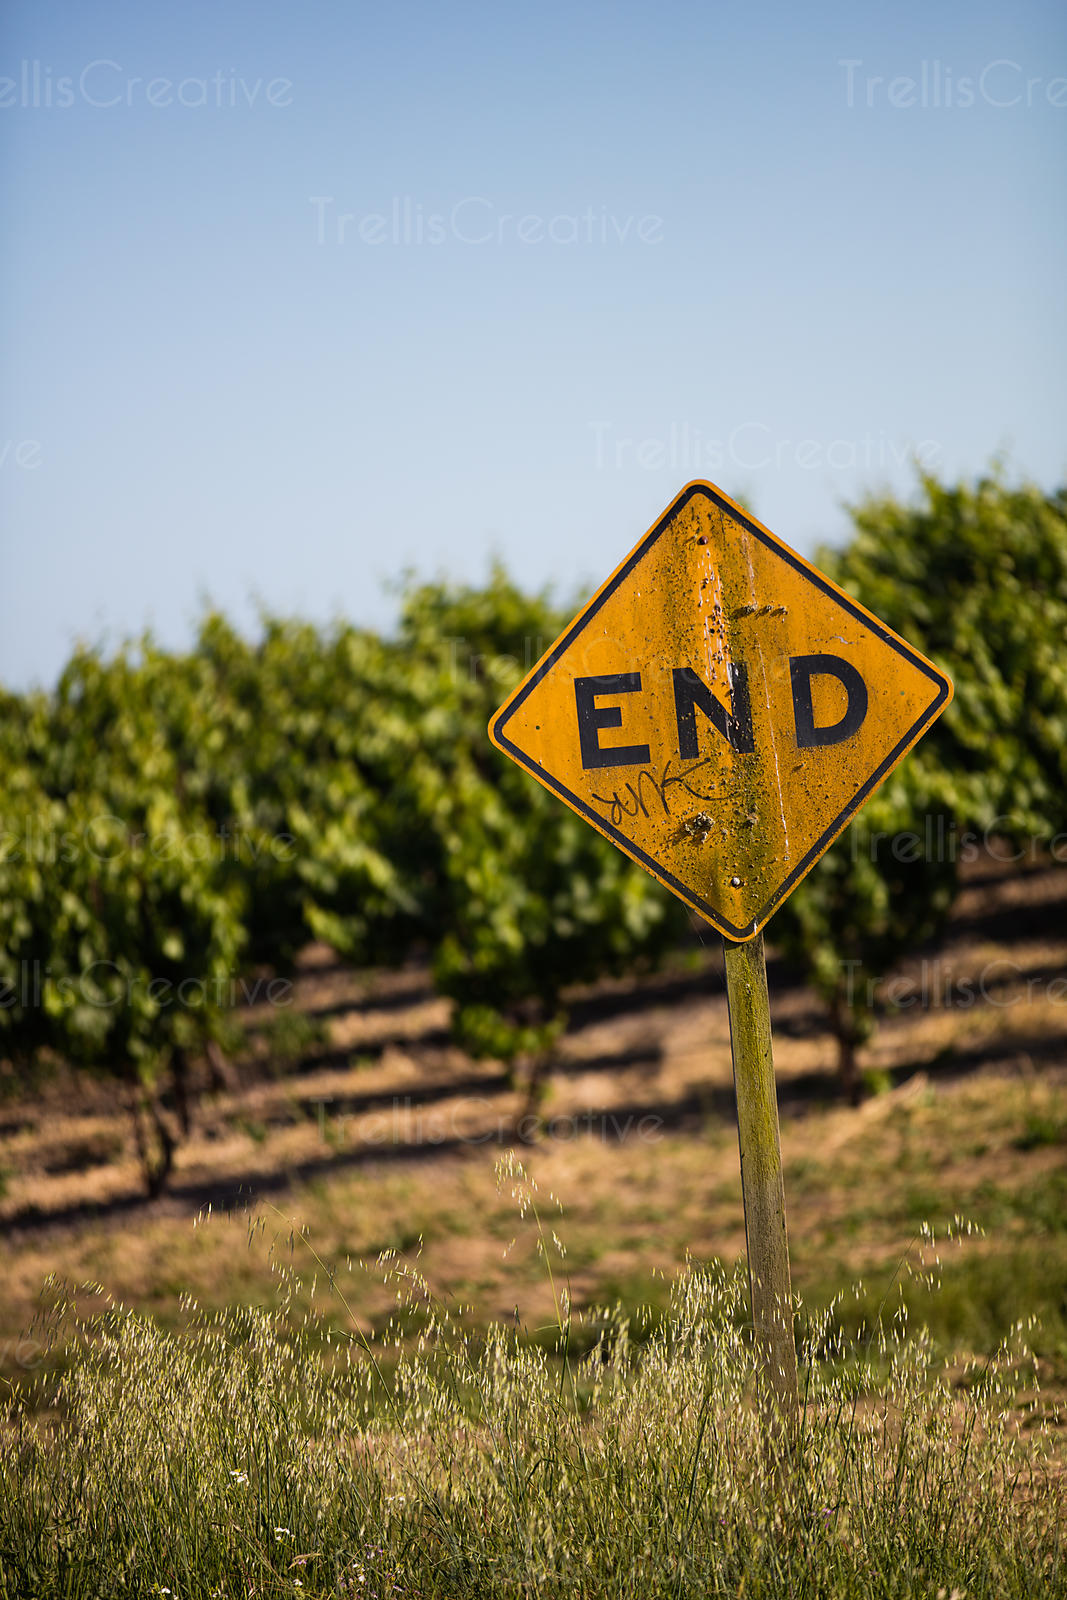 End of the Road sign in front of vineyard, Napa Valley, California, USA.